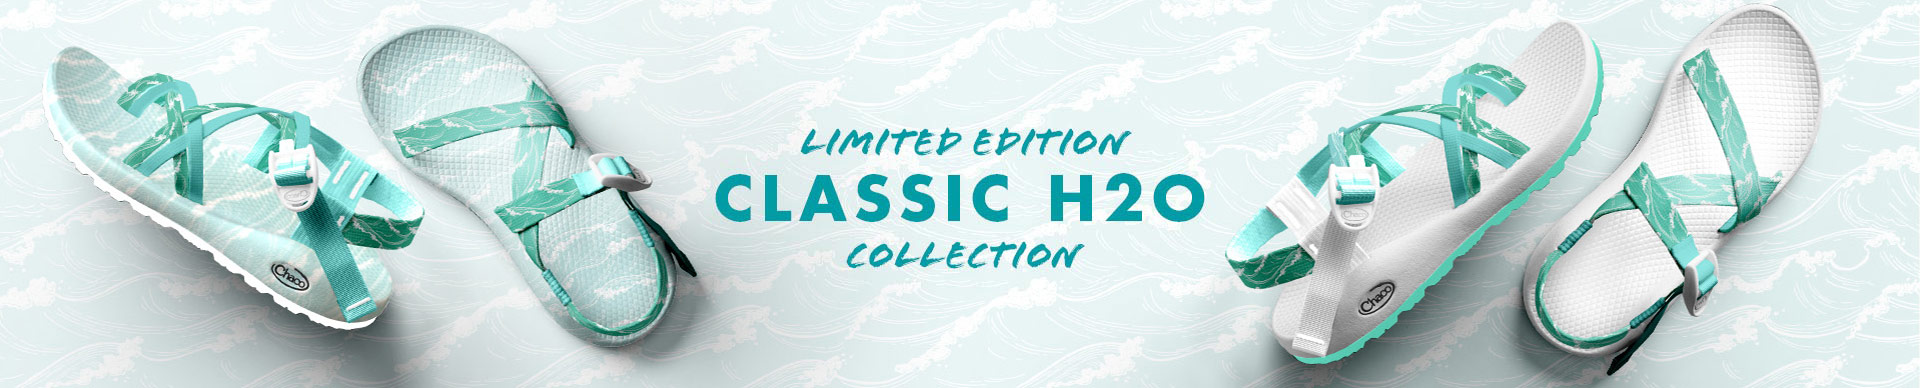 Limited Edition Classic H20 Collection